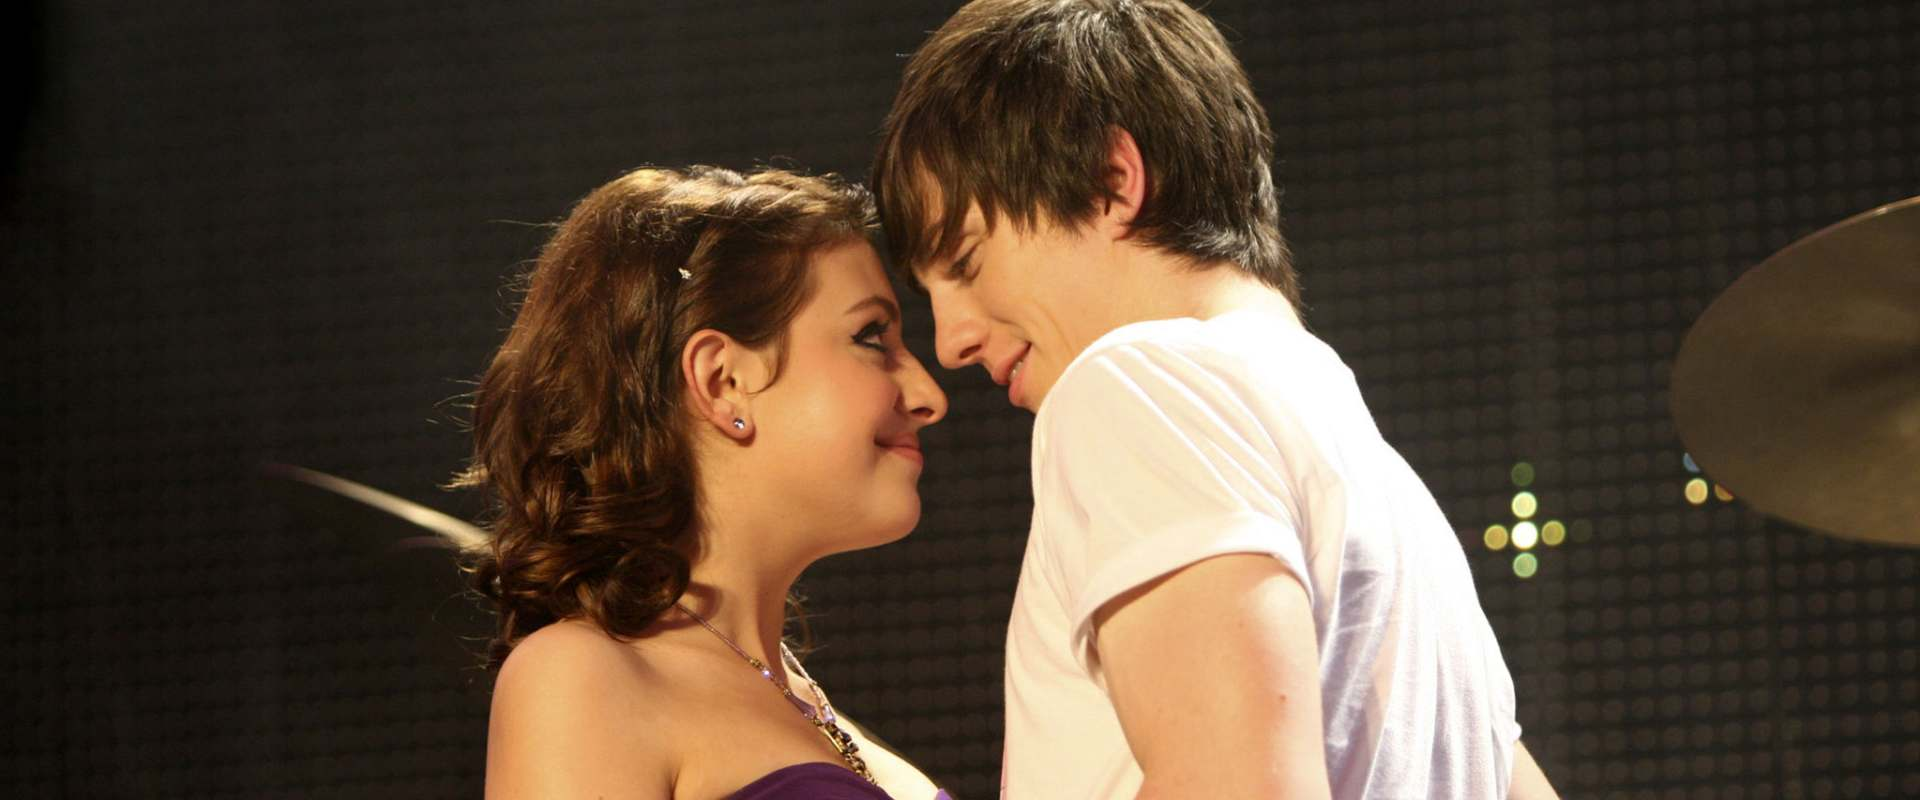 Angus Thongs And Perfect Snogging Cast watch angus, thongs and perfect snogging on netflix today